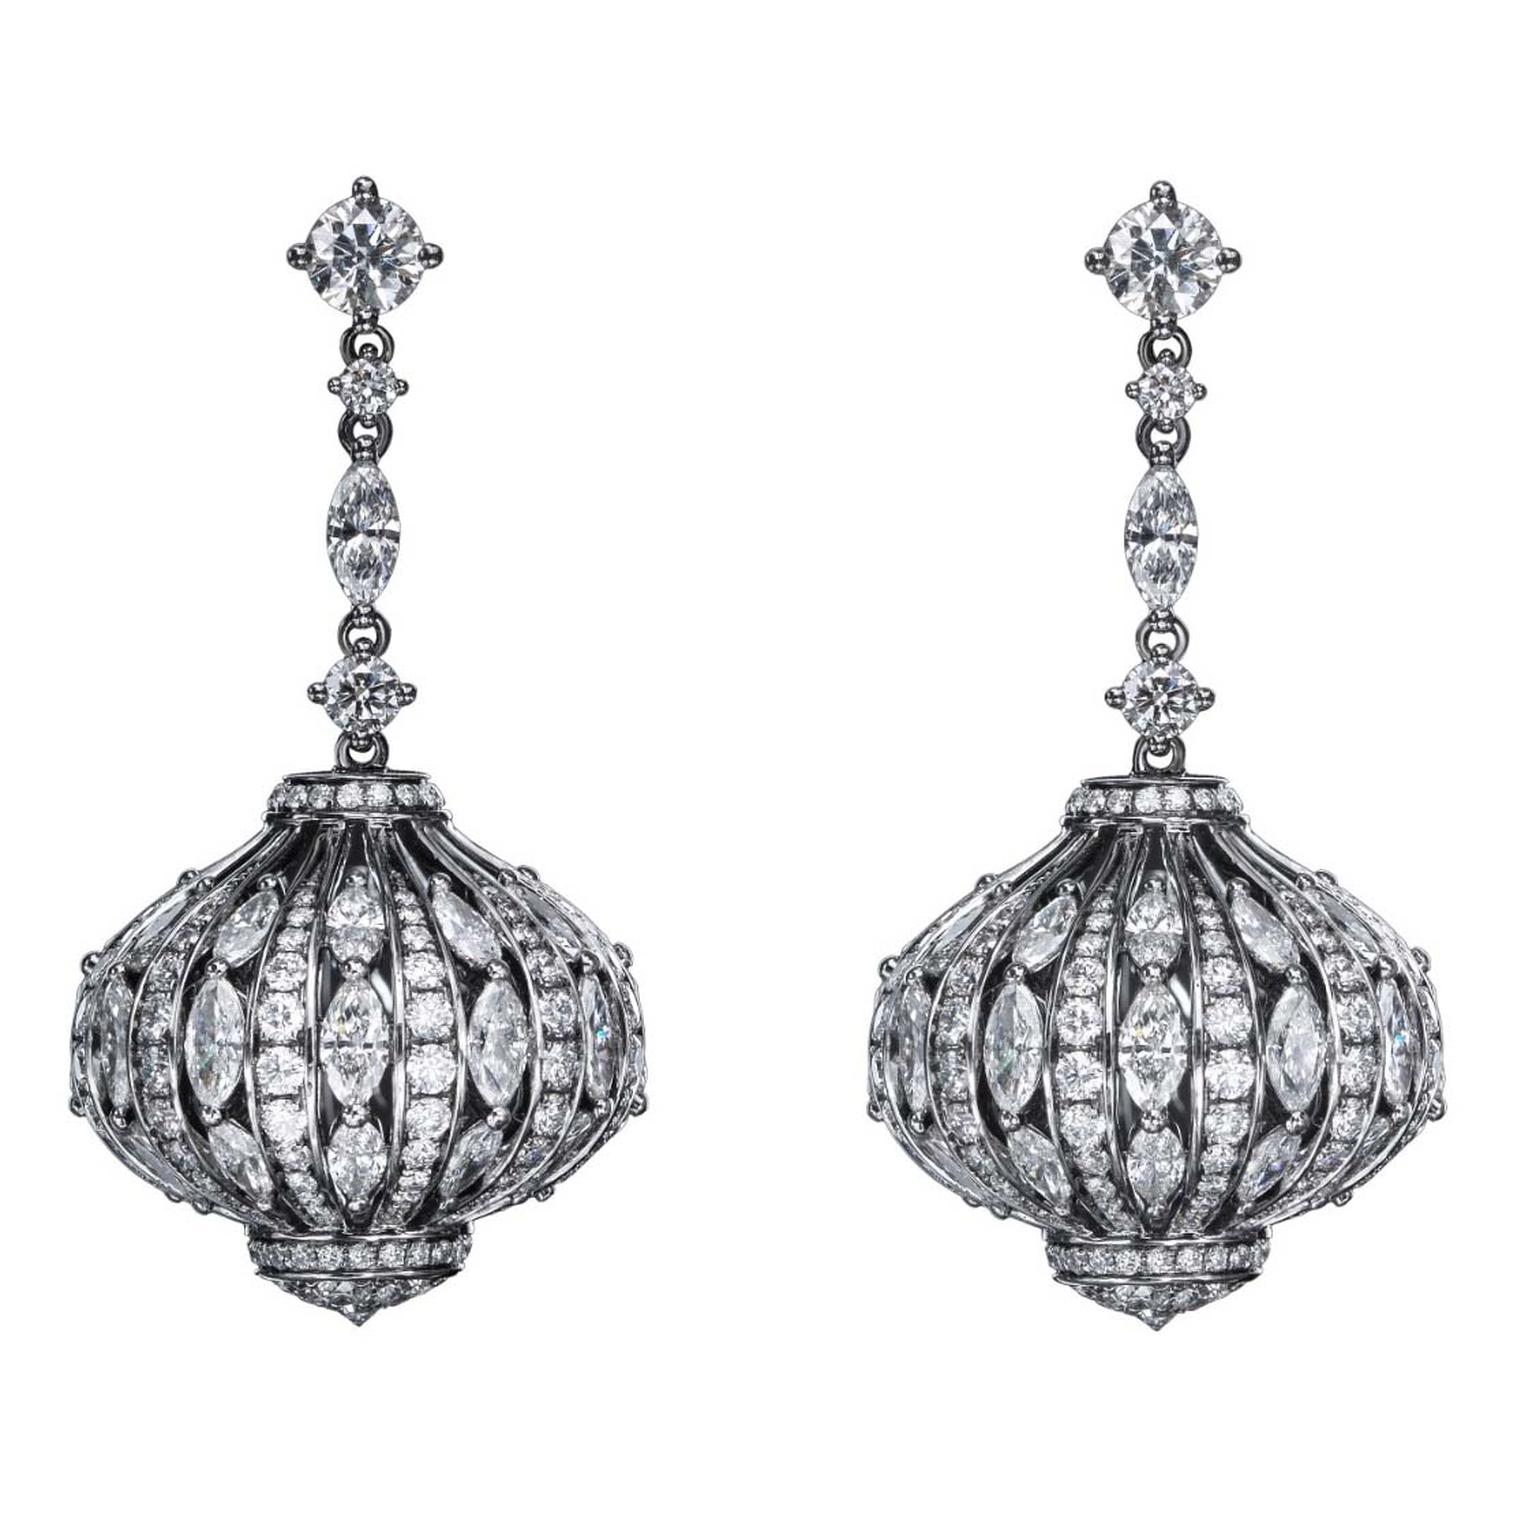 The Marquise earrings from No. THIRTY THREE in 18 carat black gold with white diamonds